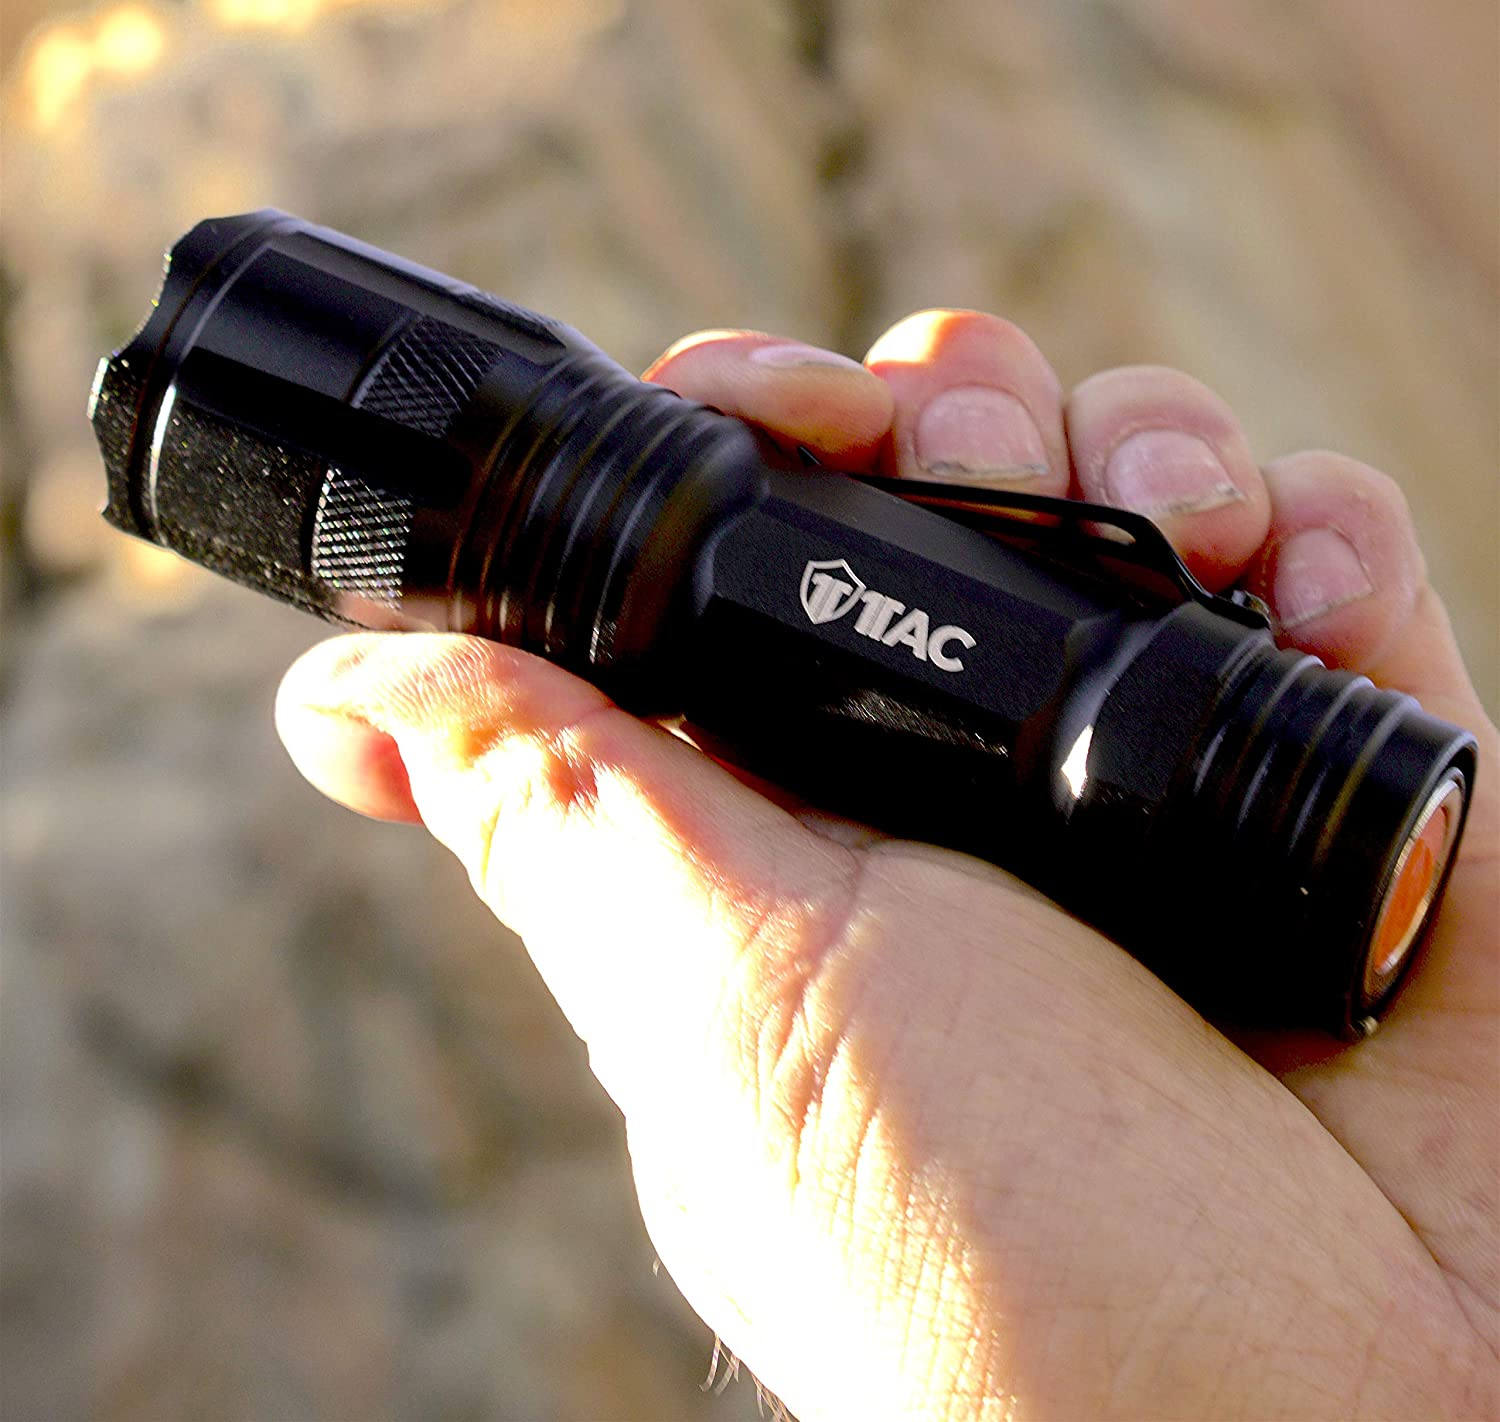 Image of a hand holding a tactical flashlight.